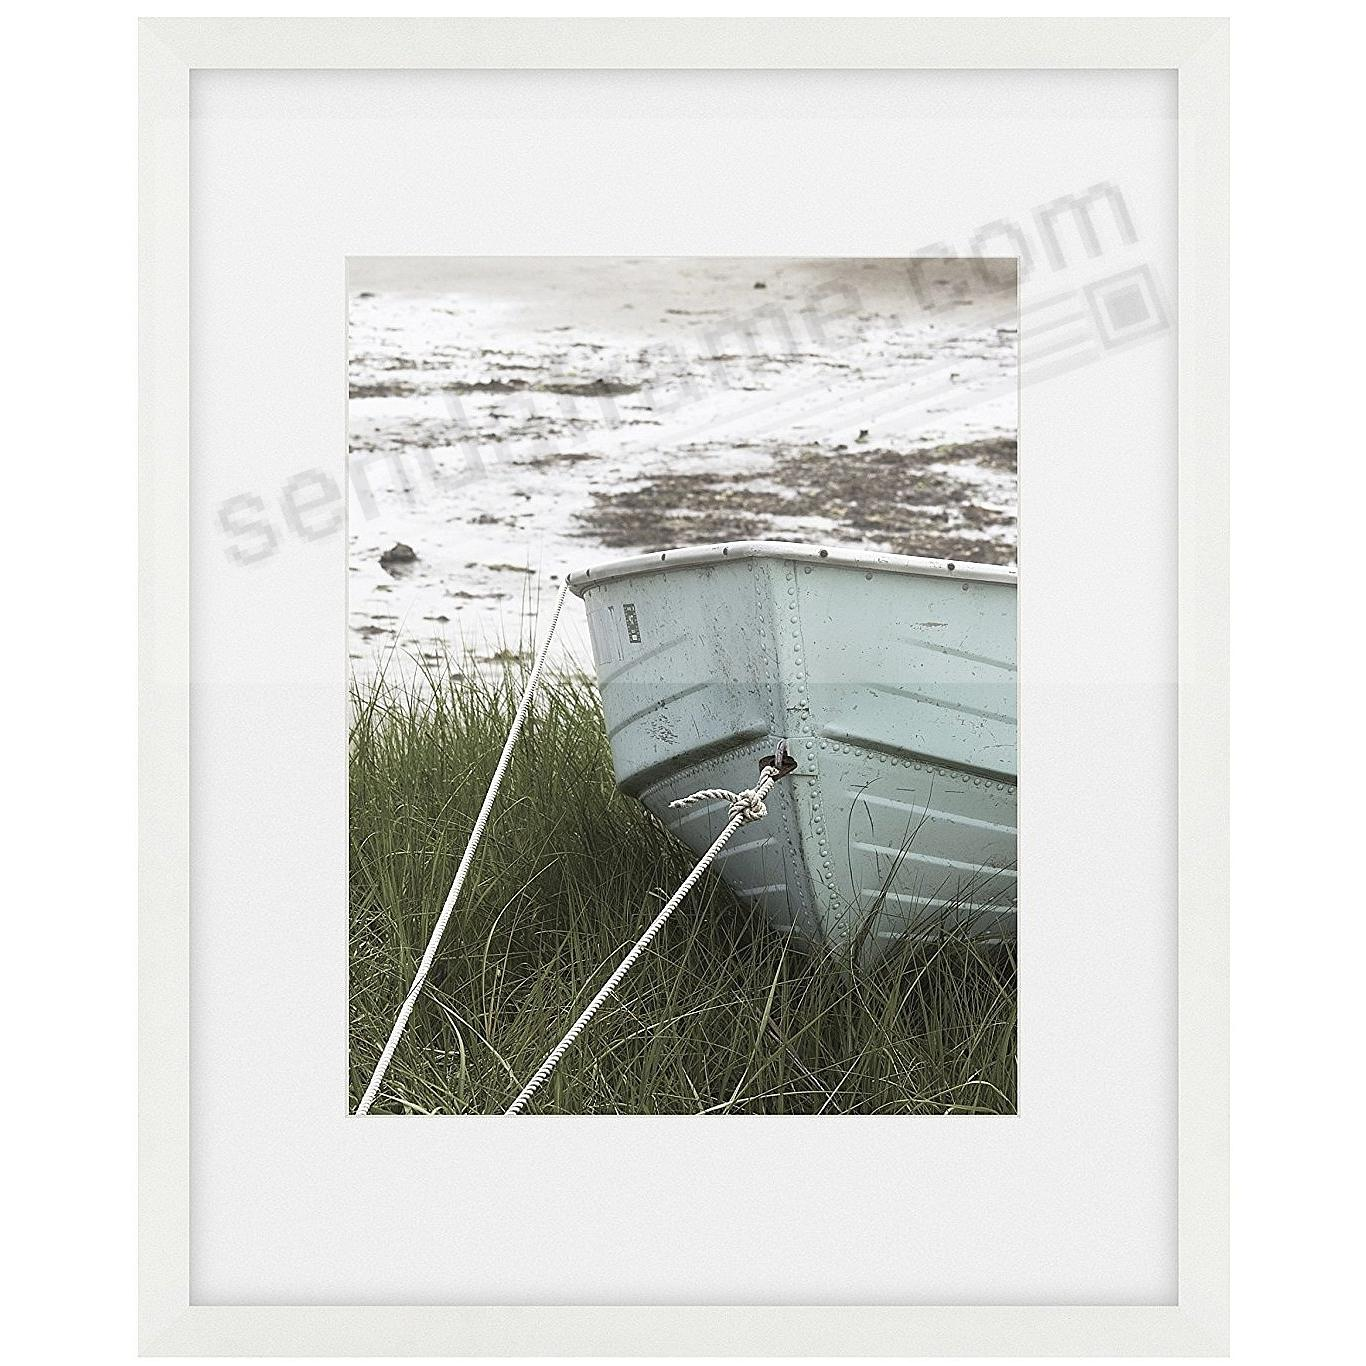 Matte-White TRIBECA archival 16x20/11x14 matted wood frame by ARTCARE®